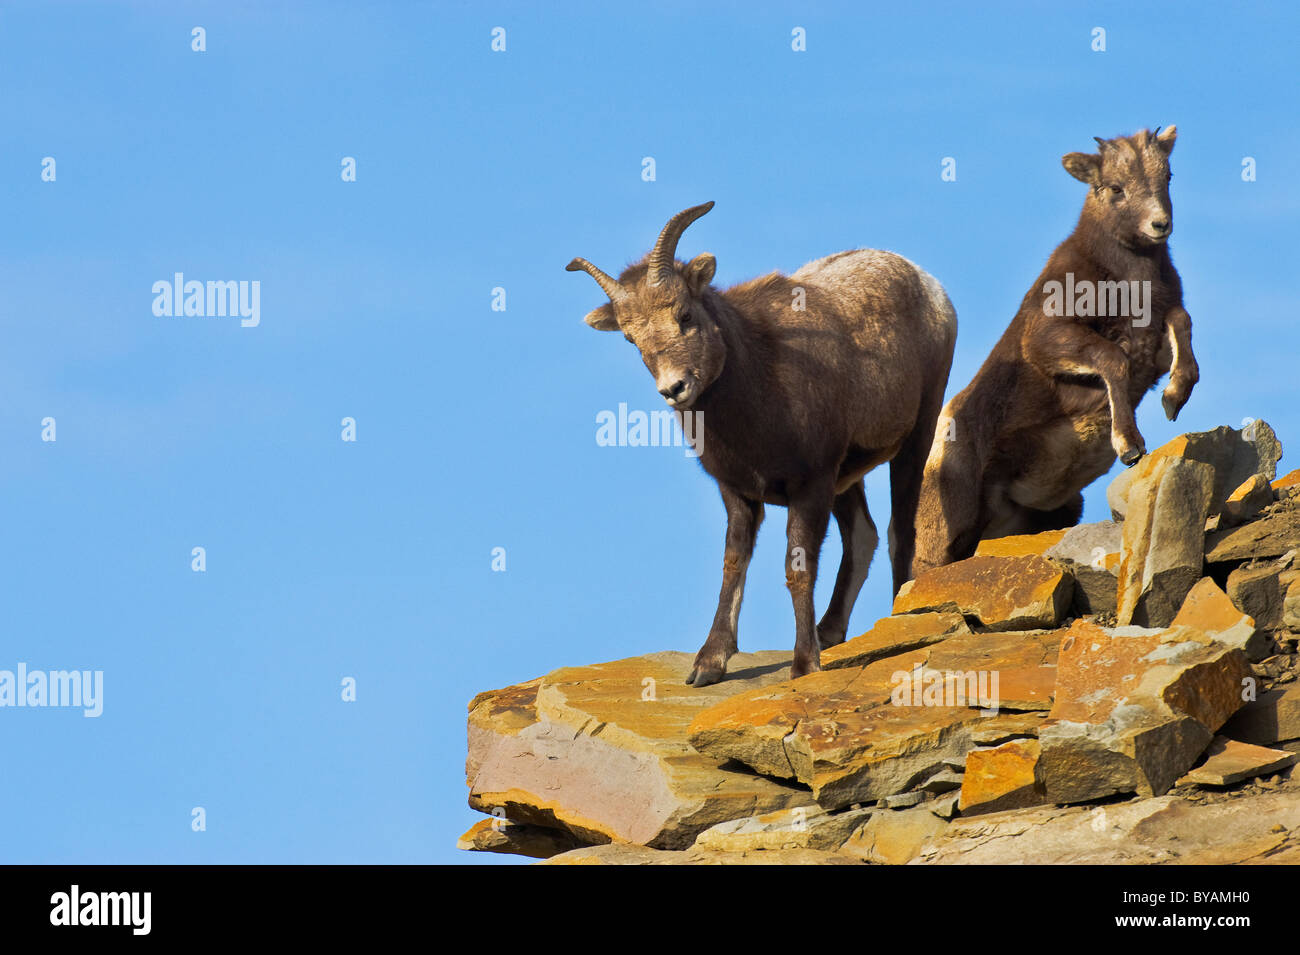 A Bighorn Sheep mother with a young baby on a rocky out crop near the top of a mountain. - Stock Image